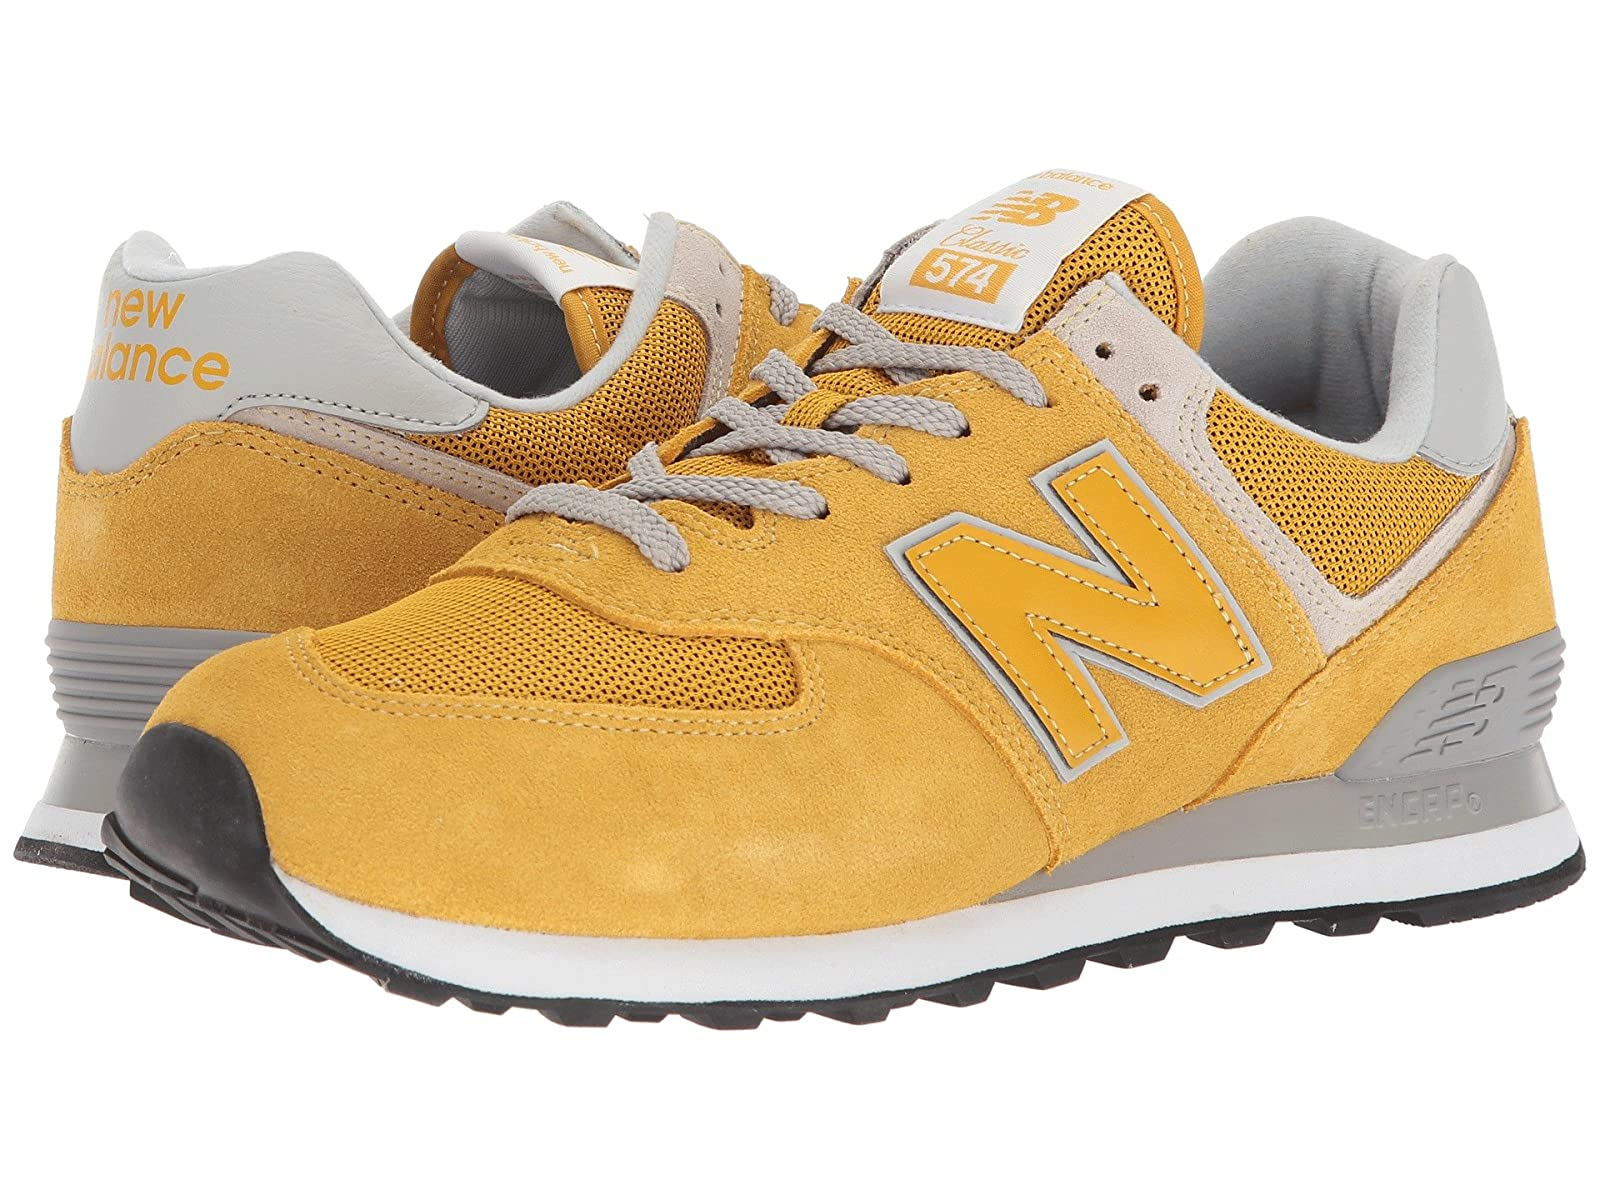 New Balance Classics ML574v2Cheap and distinctive eye-catching shoes